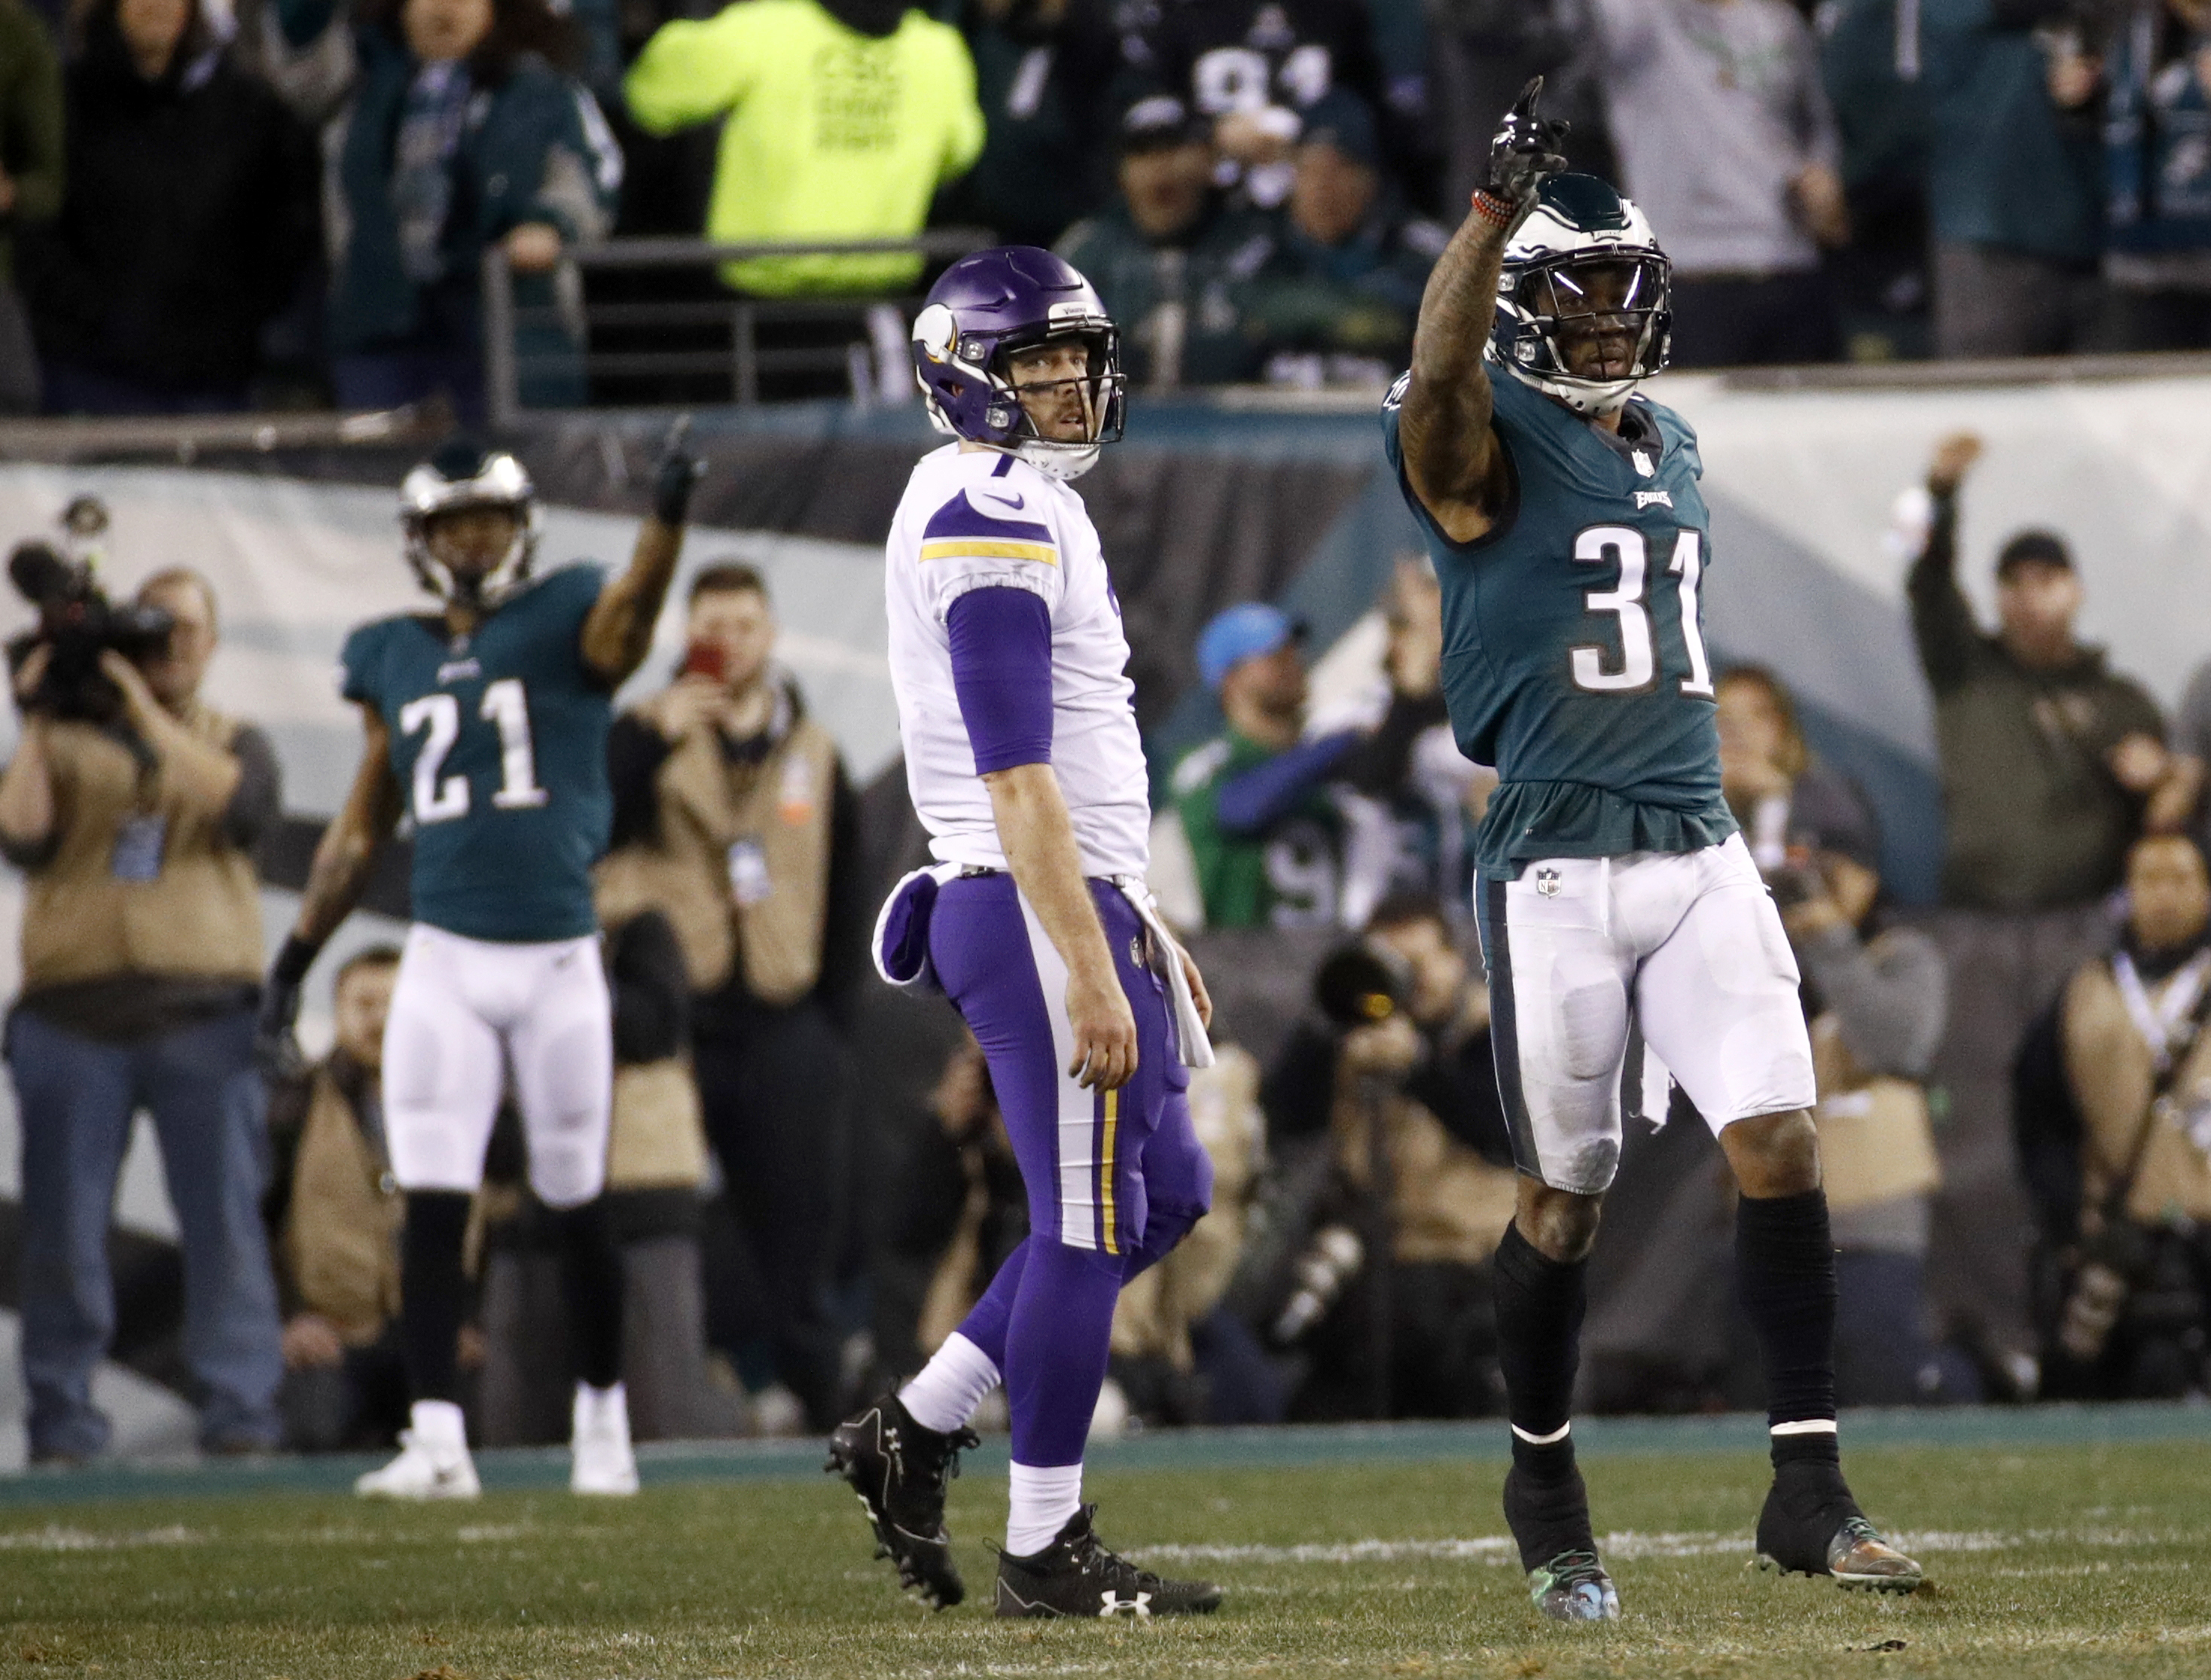 <div class='meta'><div class='origin-logo' data-origin='AP'></div><span class='caption-text' data-credit='AP Photo/Patrick Semansky'>Philadelphia Eagles' Jalen Mills celebrates a fumble recovery in front of Minnesota Vikings' Case Keenum during the first half of the NFL football NFC championship game.</span></div>